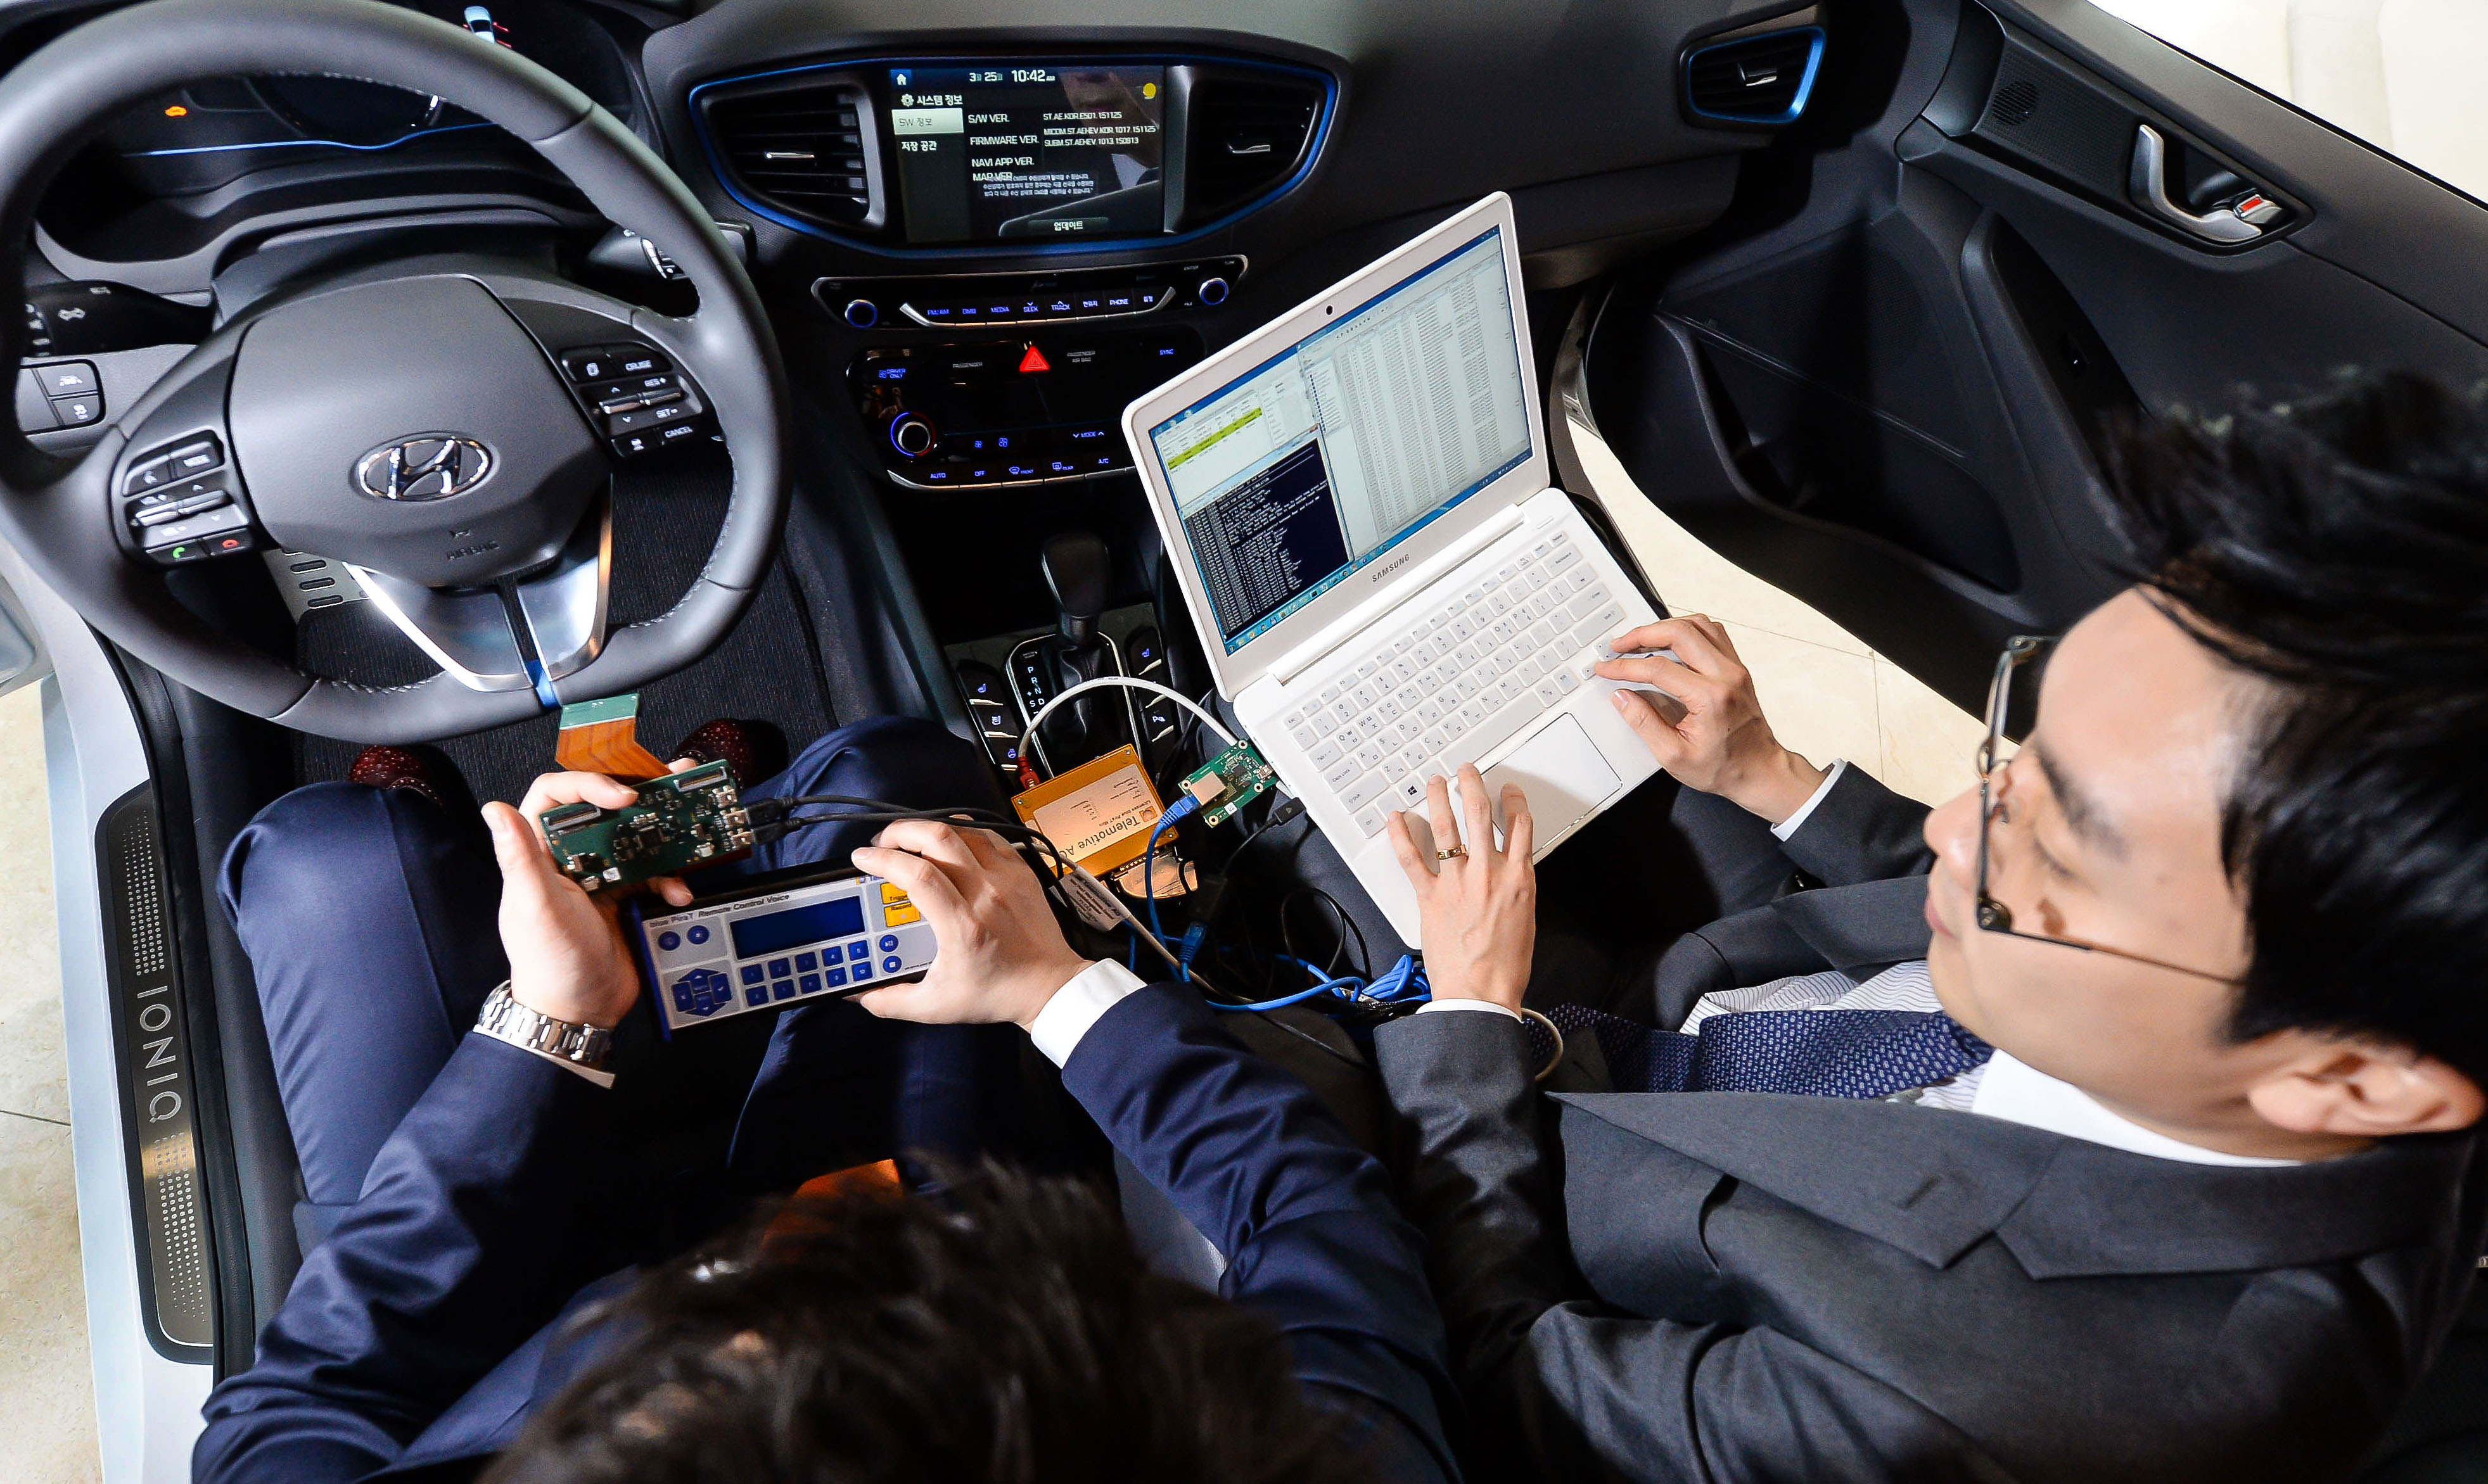 Hyundai is partnering with Cisco to improve the transfer of data to enable the next generation on connected car services.